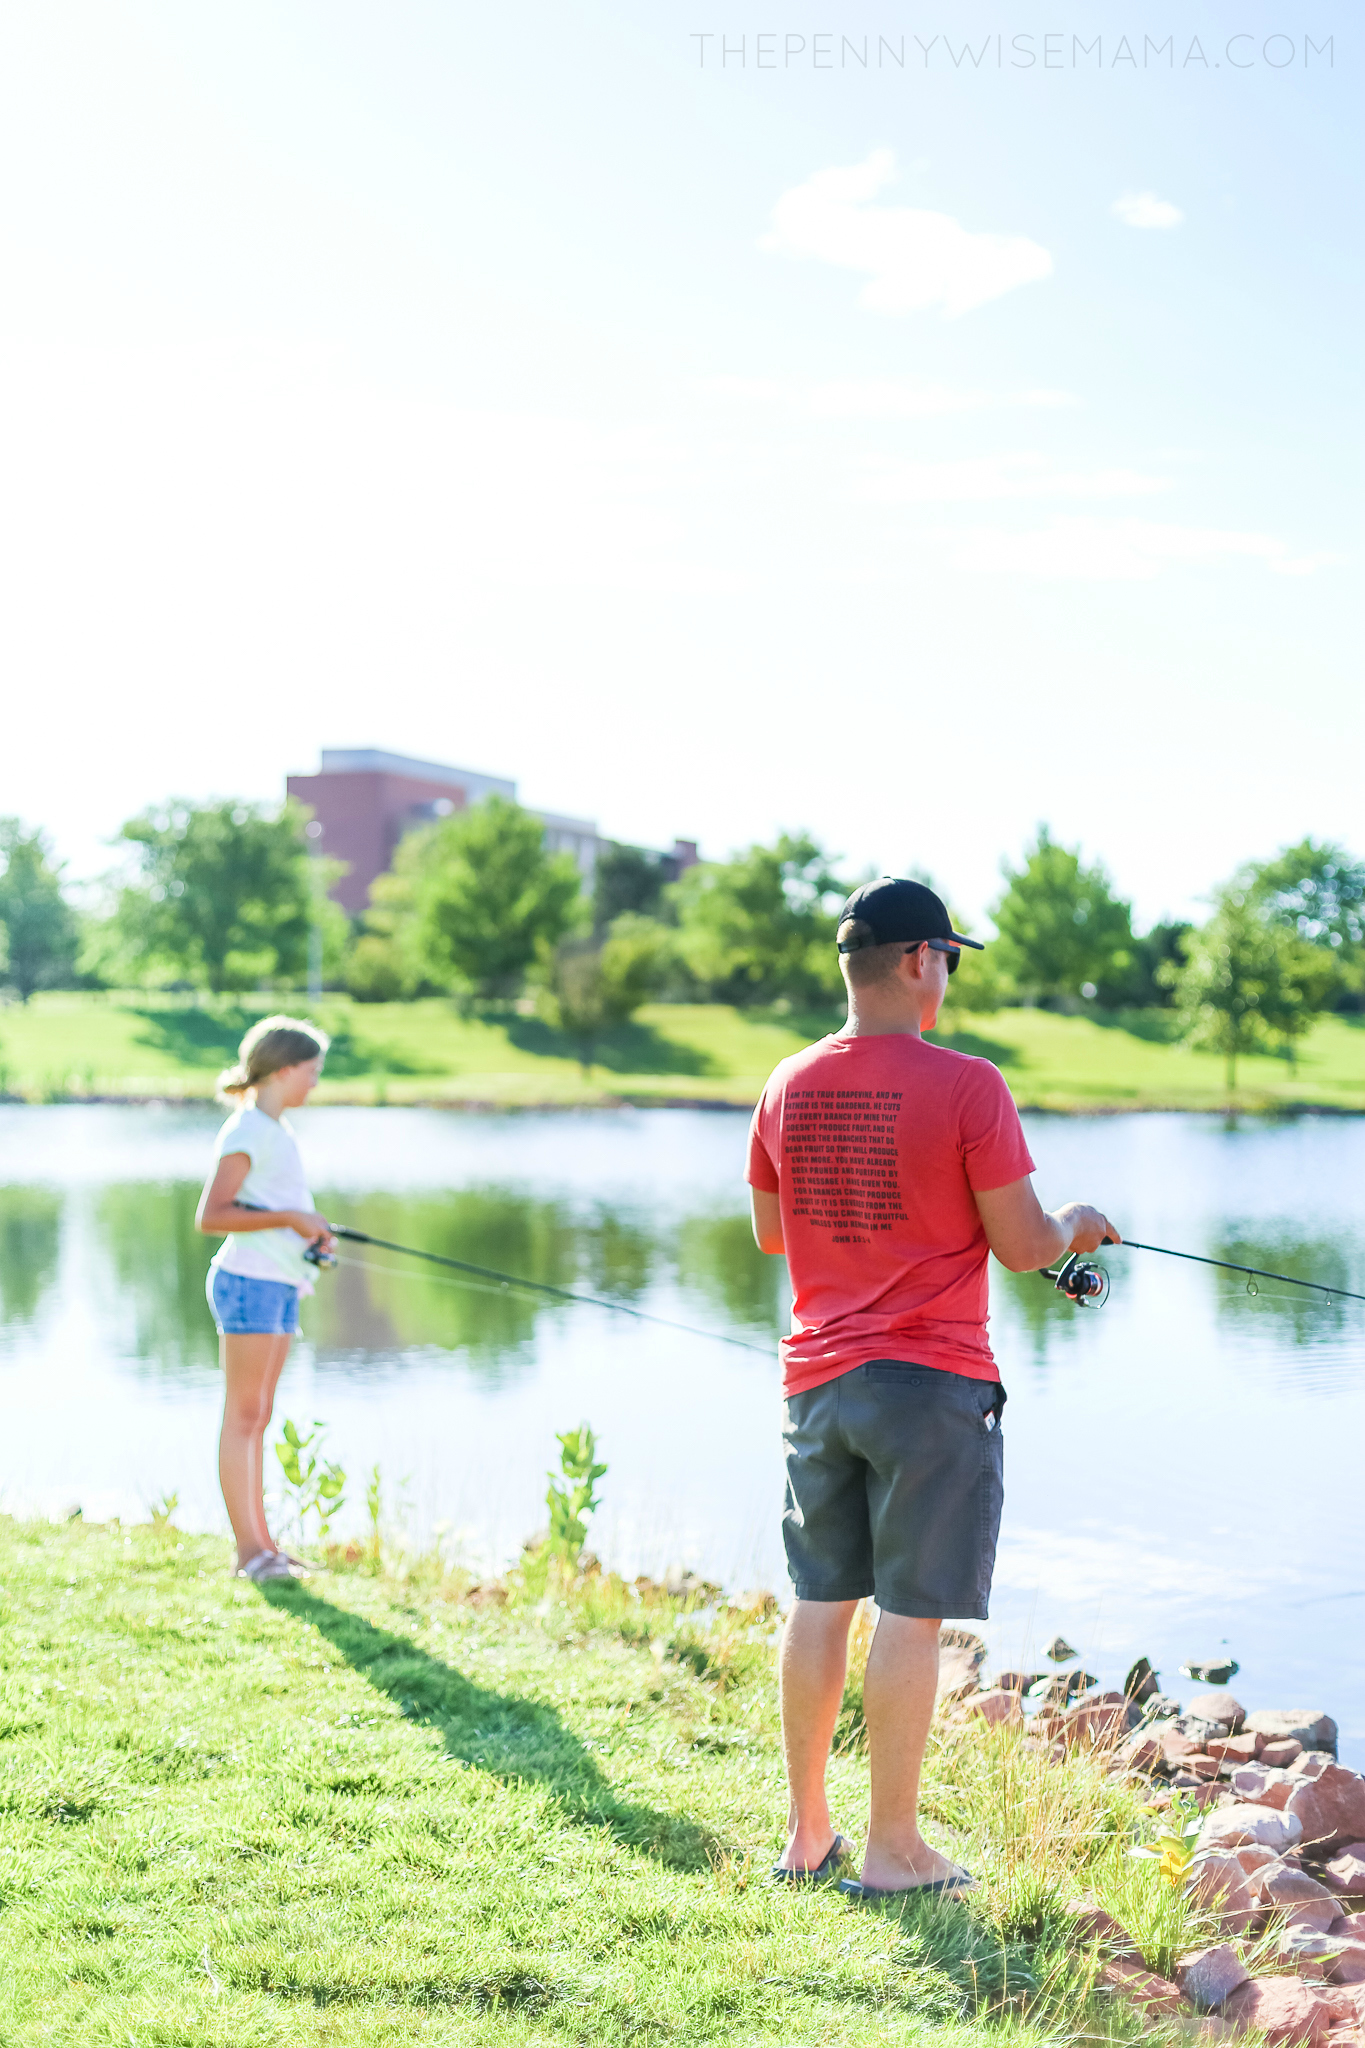 10 FUN FAMILY ACTIVITIES TO DO THIS SUMMER